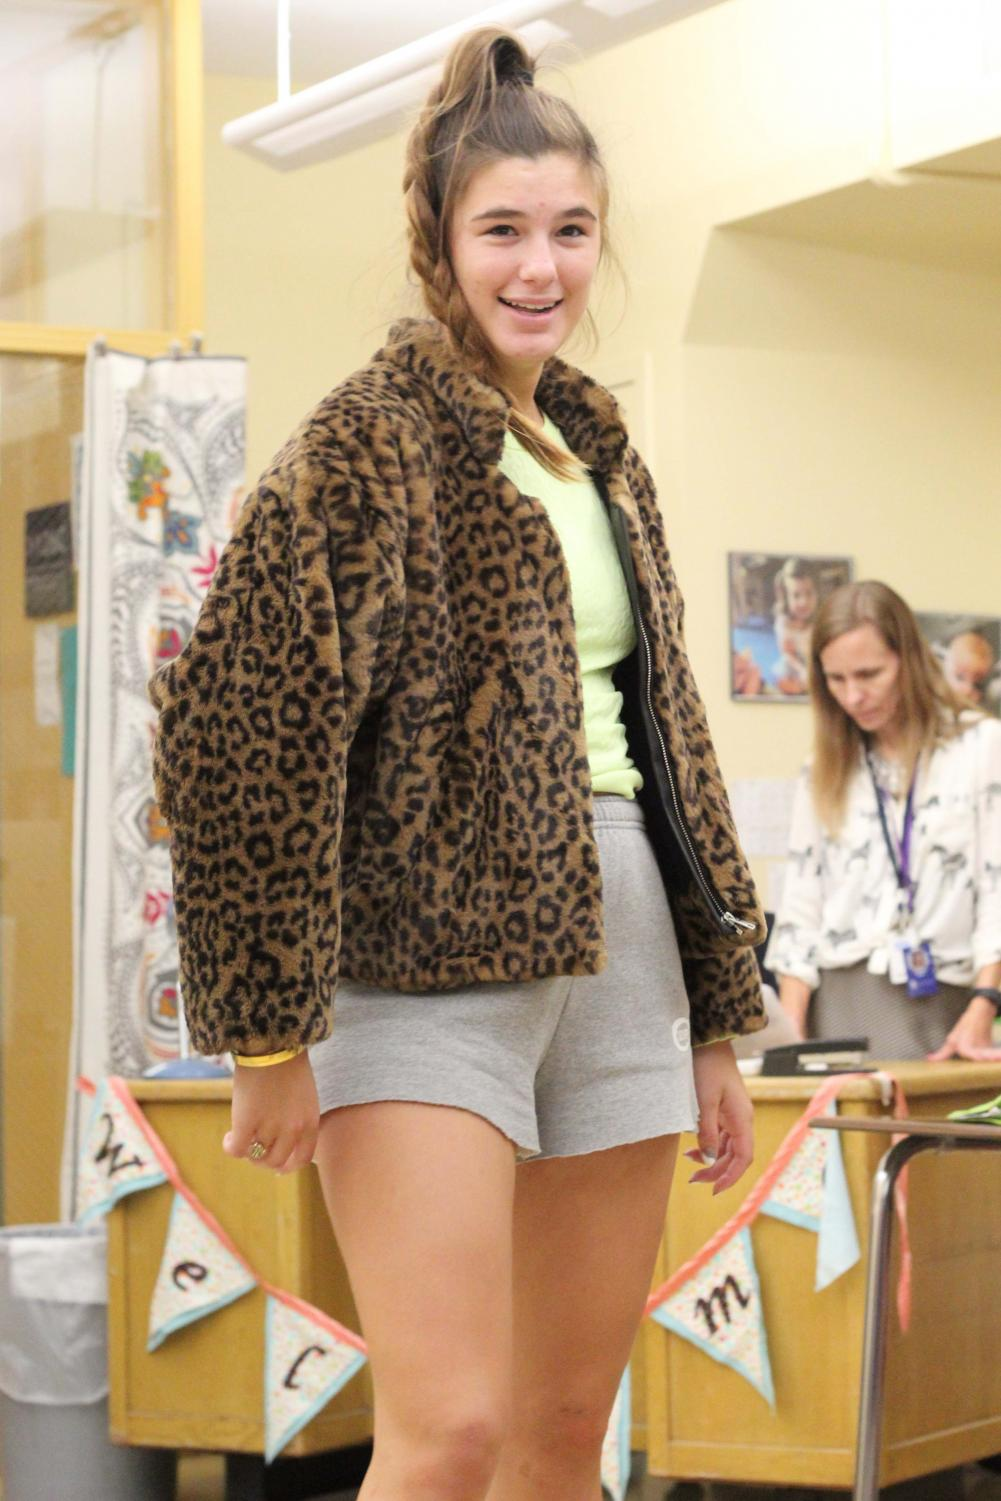 Striking+a+pose+in+her+cheetah+print+jacket%2C+Senior+Reilly+Jackoboice+shows+off+her+Pattern+Day+look+to+her+friends+Sept.+9.